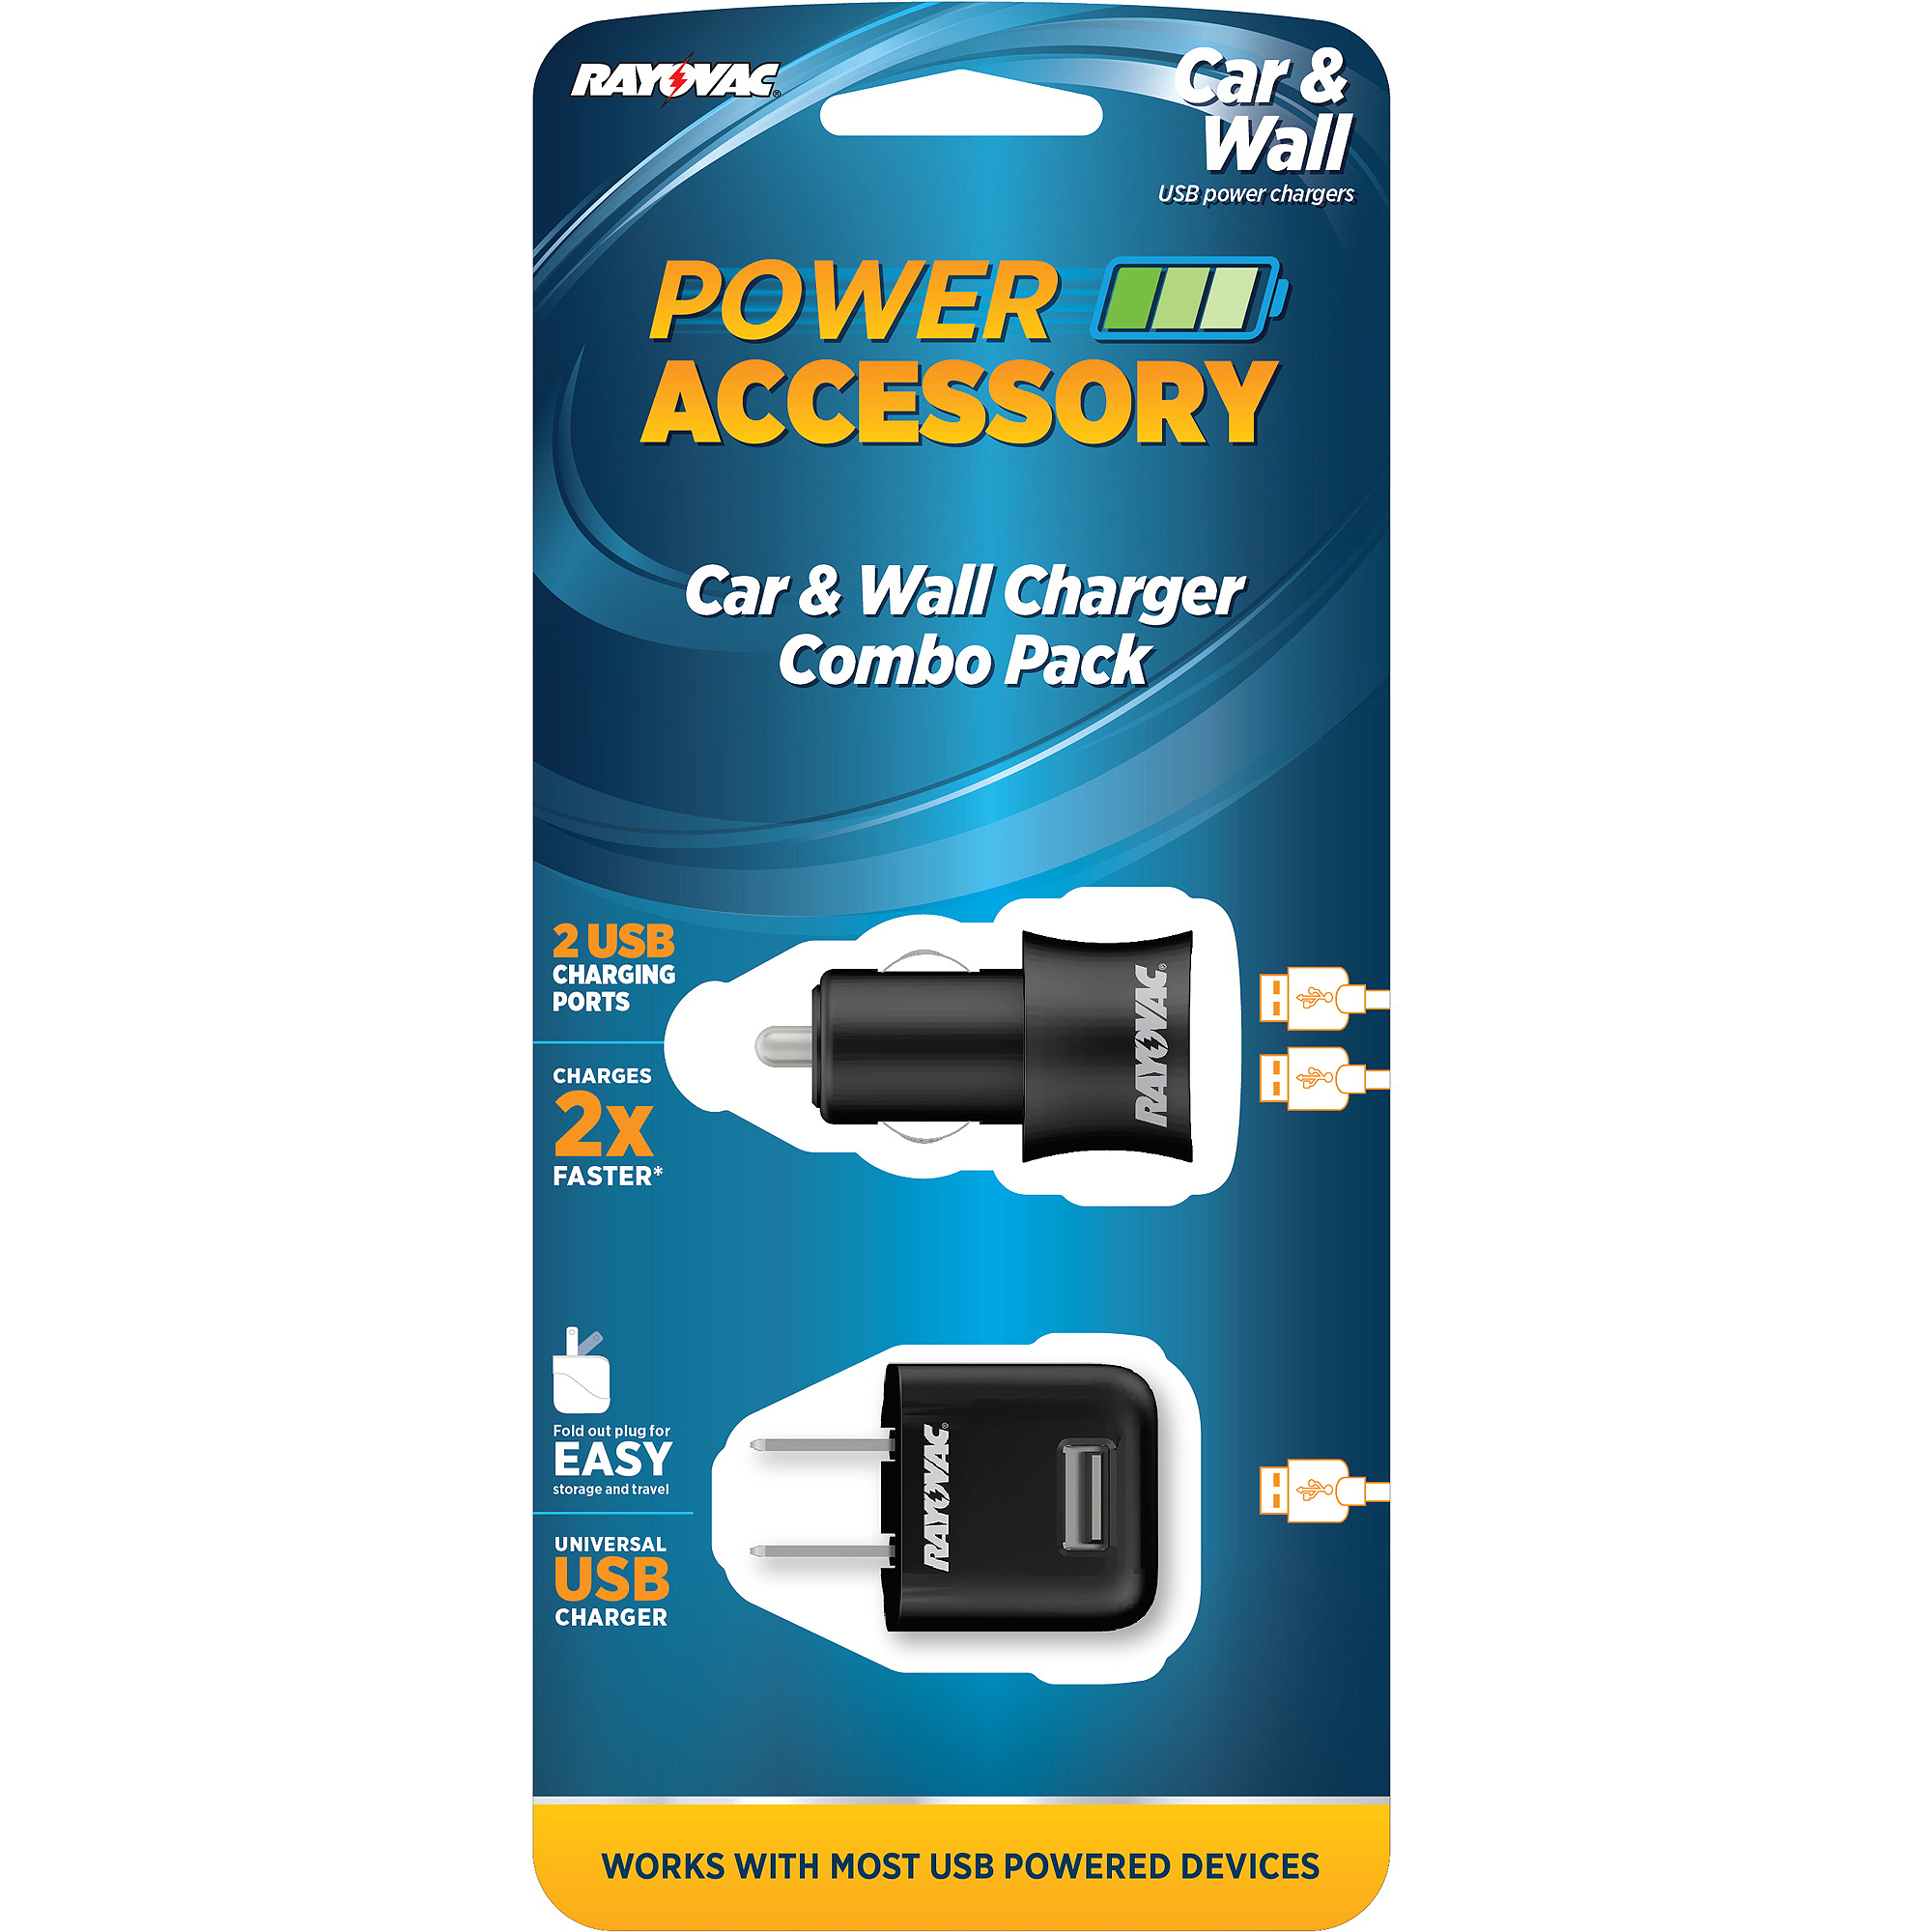 Rayovac USB Wall and Car Charger Combo Pack